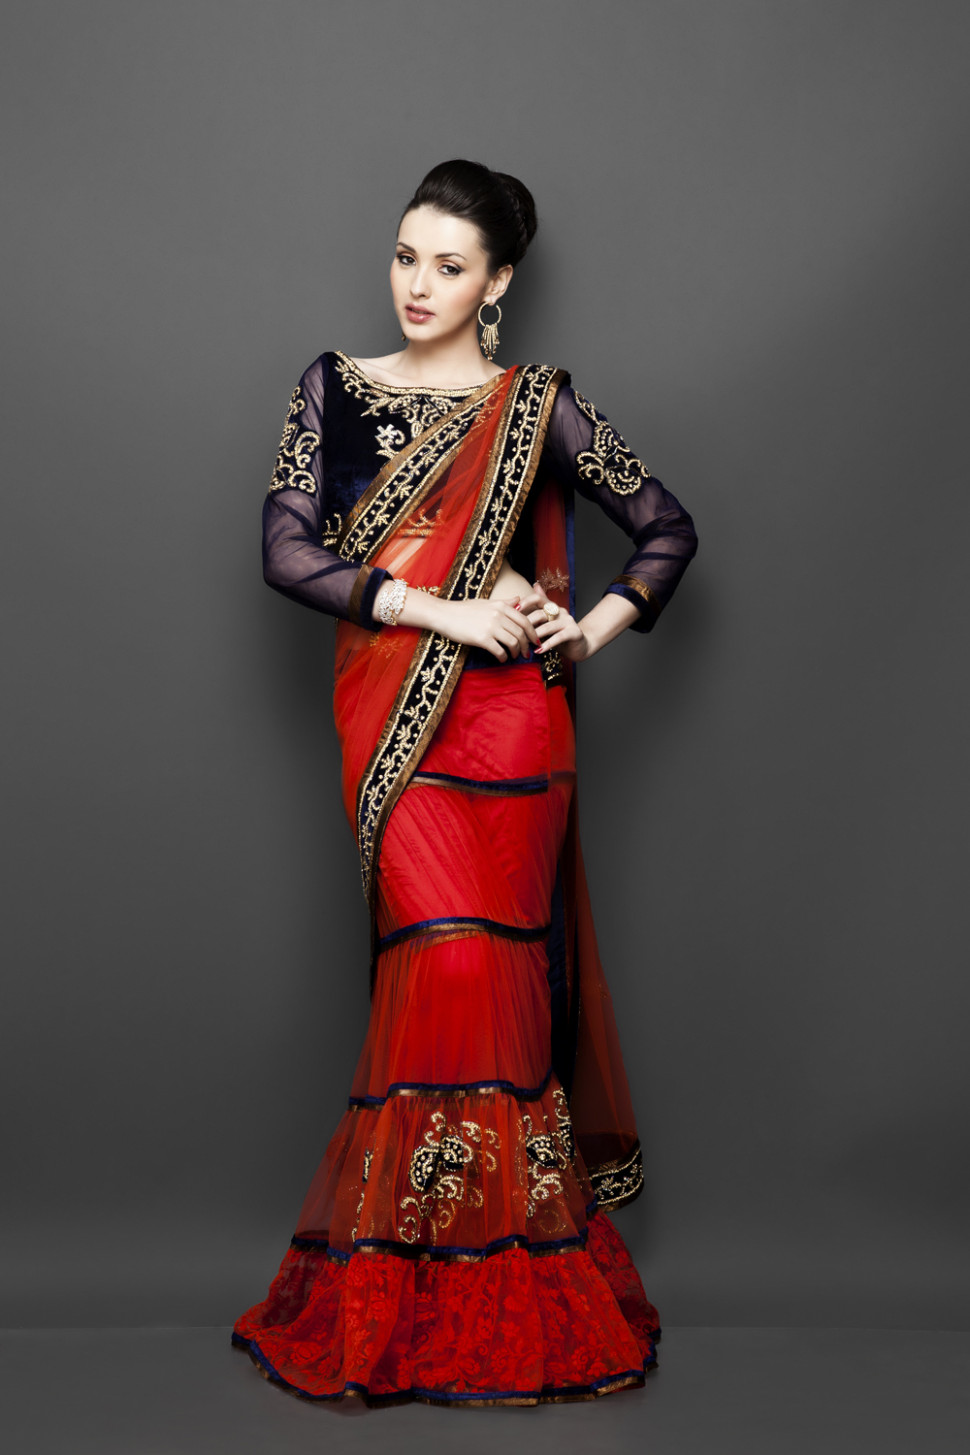 Smart Ways to Wear Sarees and Accentuate Your Body Type  - saree draping